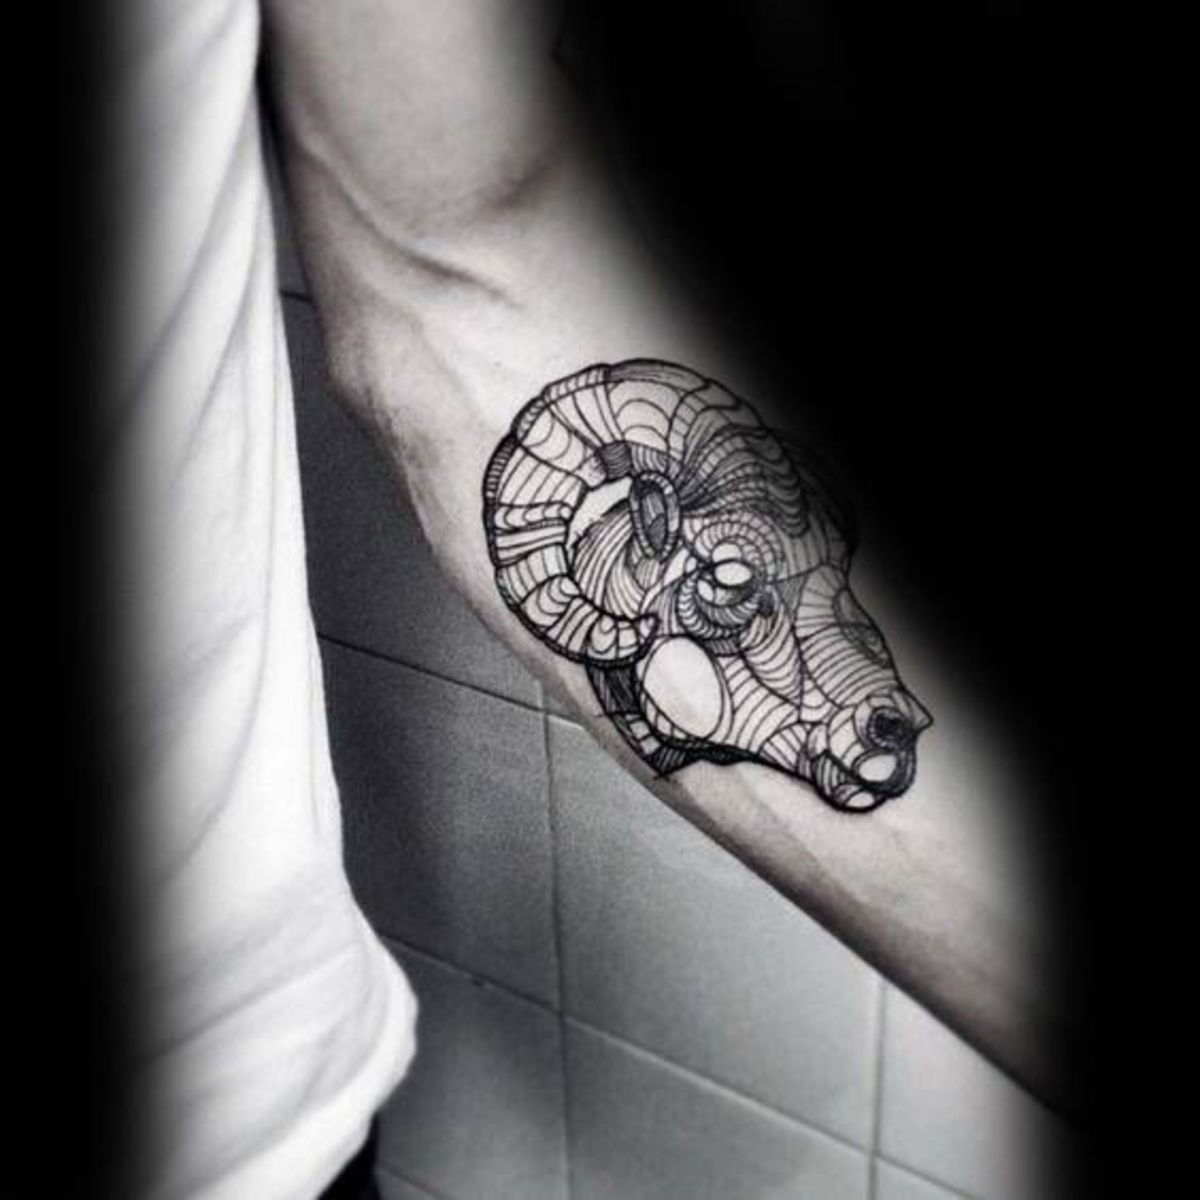 Aries forearm tattoo